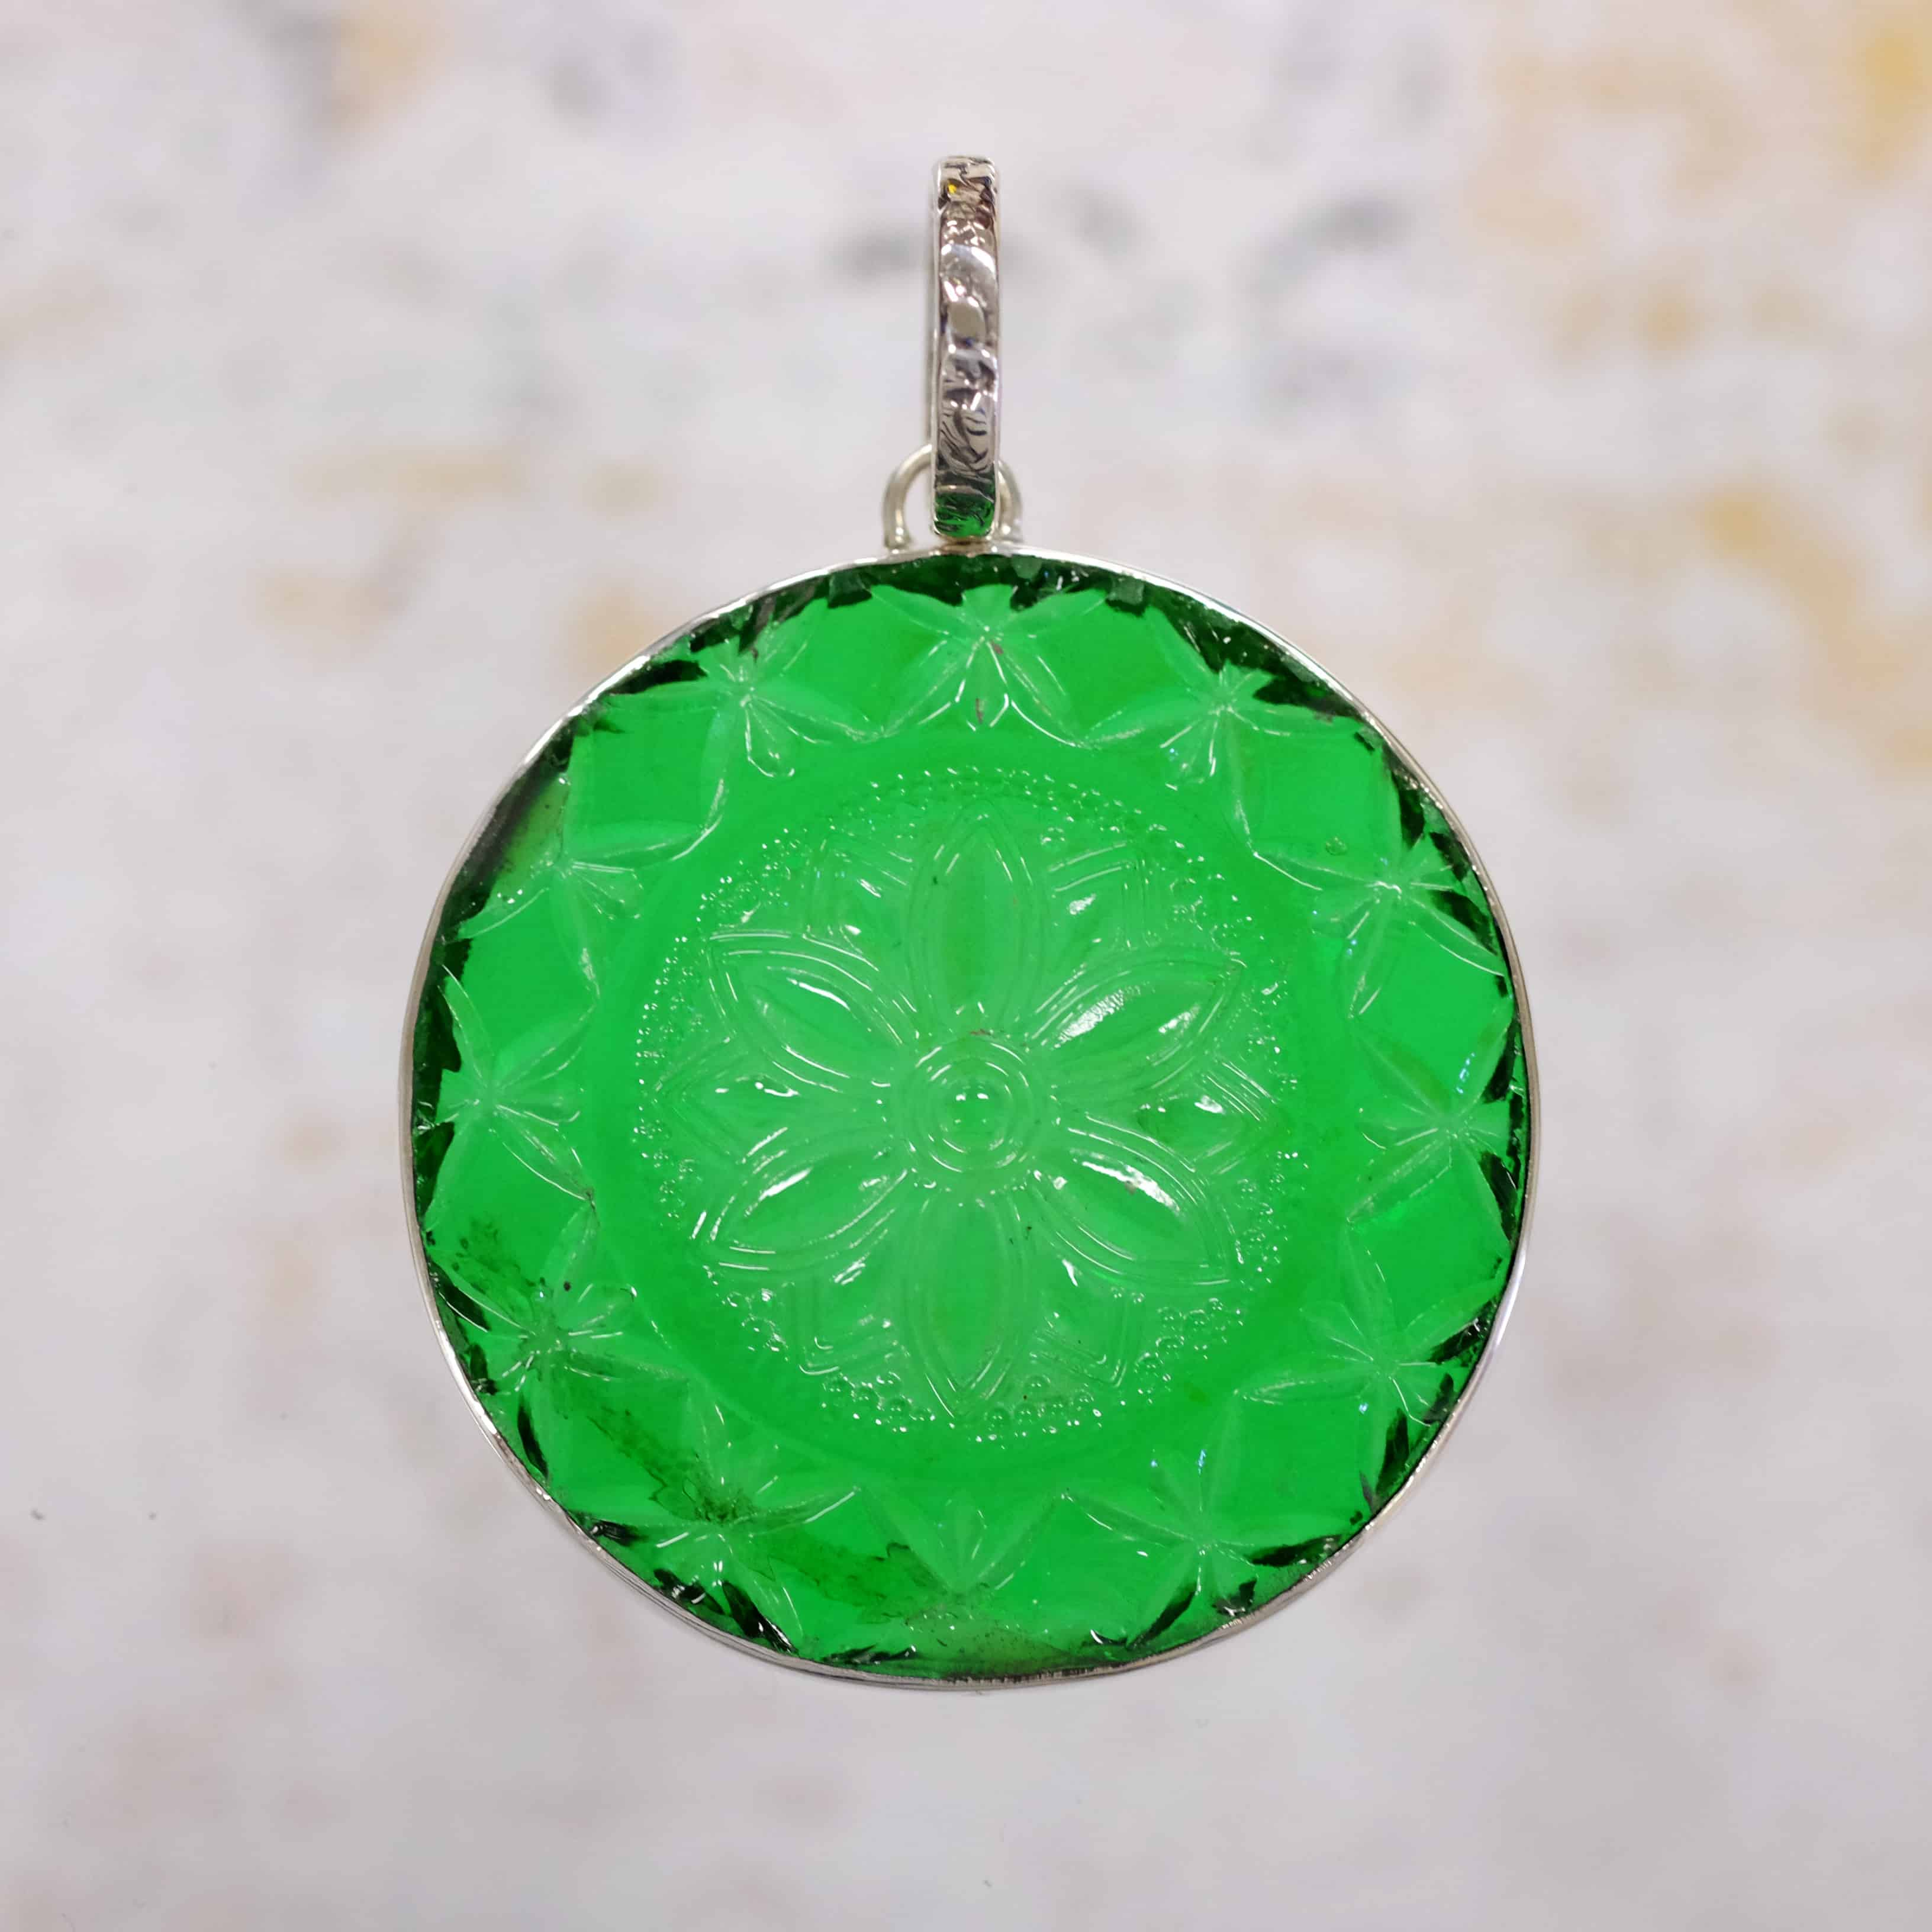 Green Pressed Glass Pendant